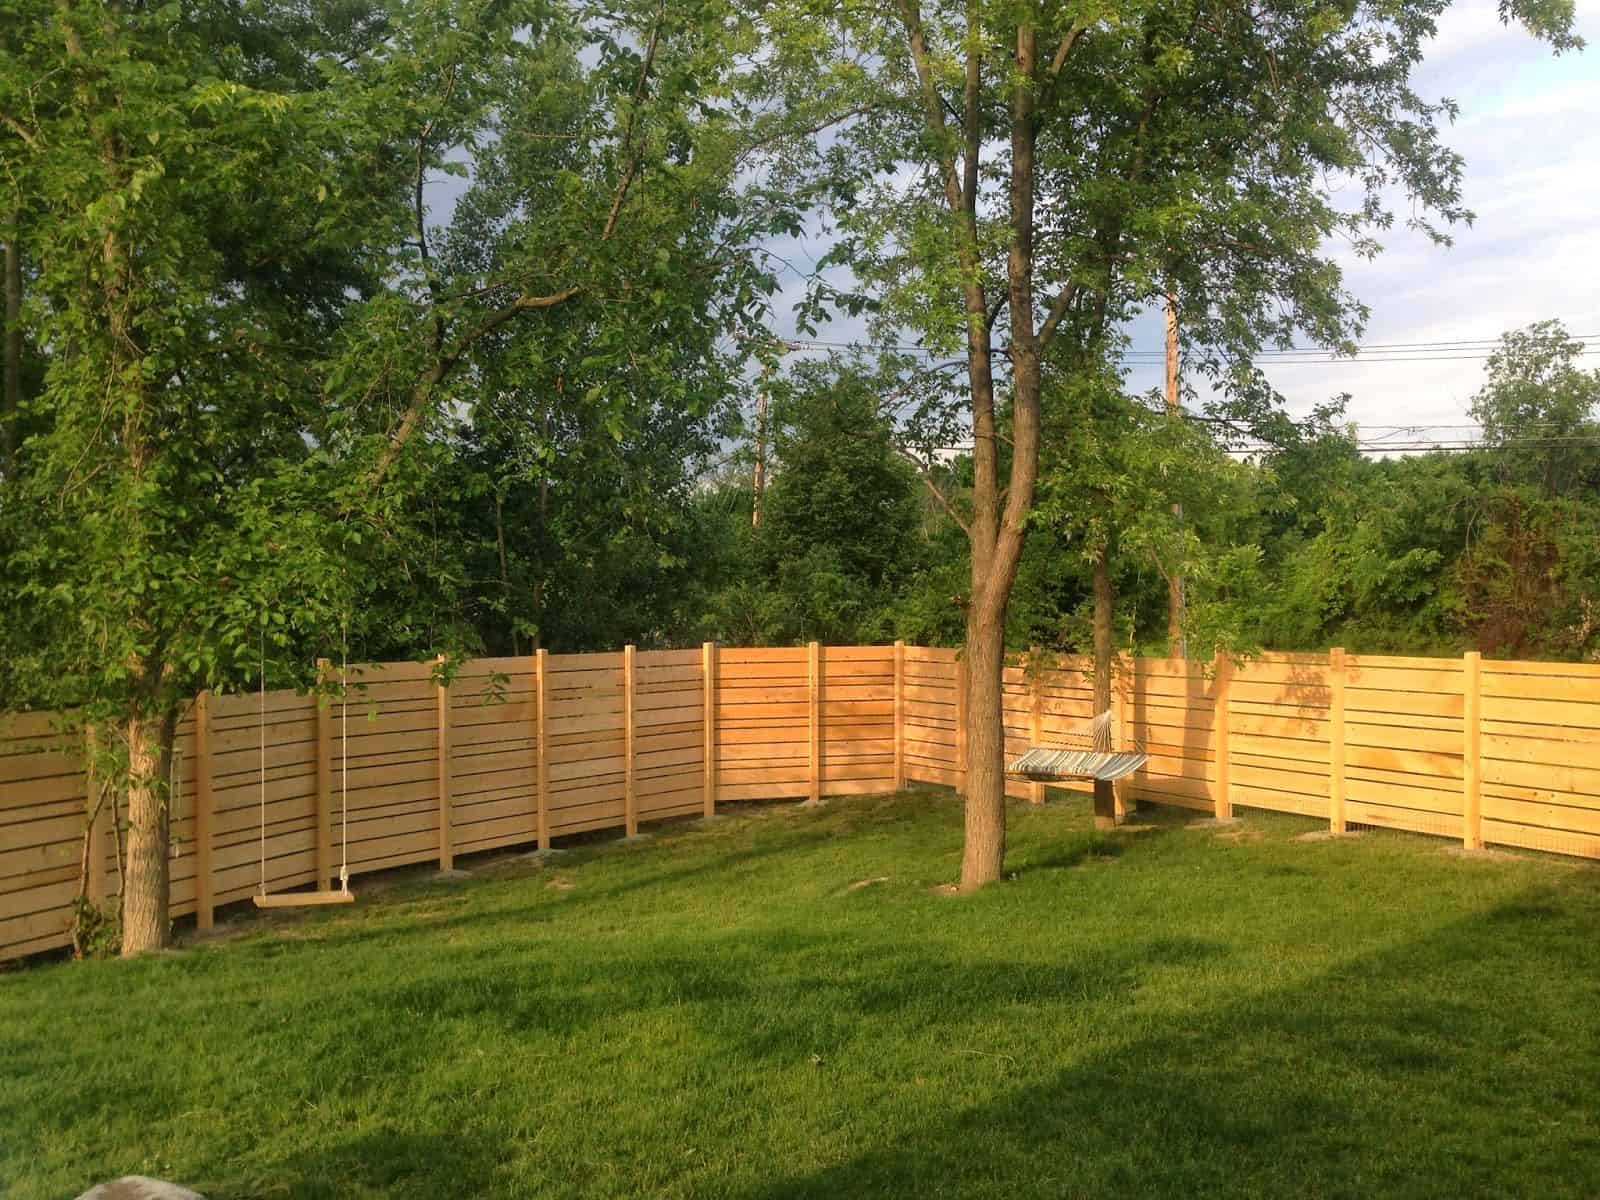 How Much Does It Cost To Fence A Yard The Housing Forum